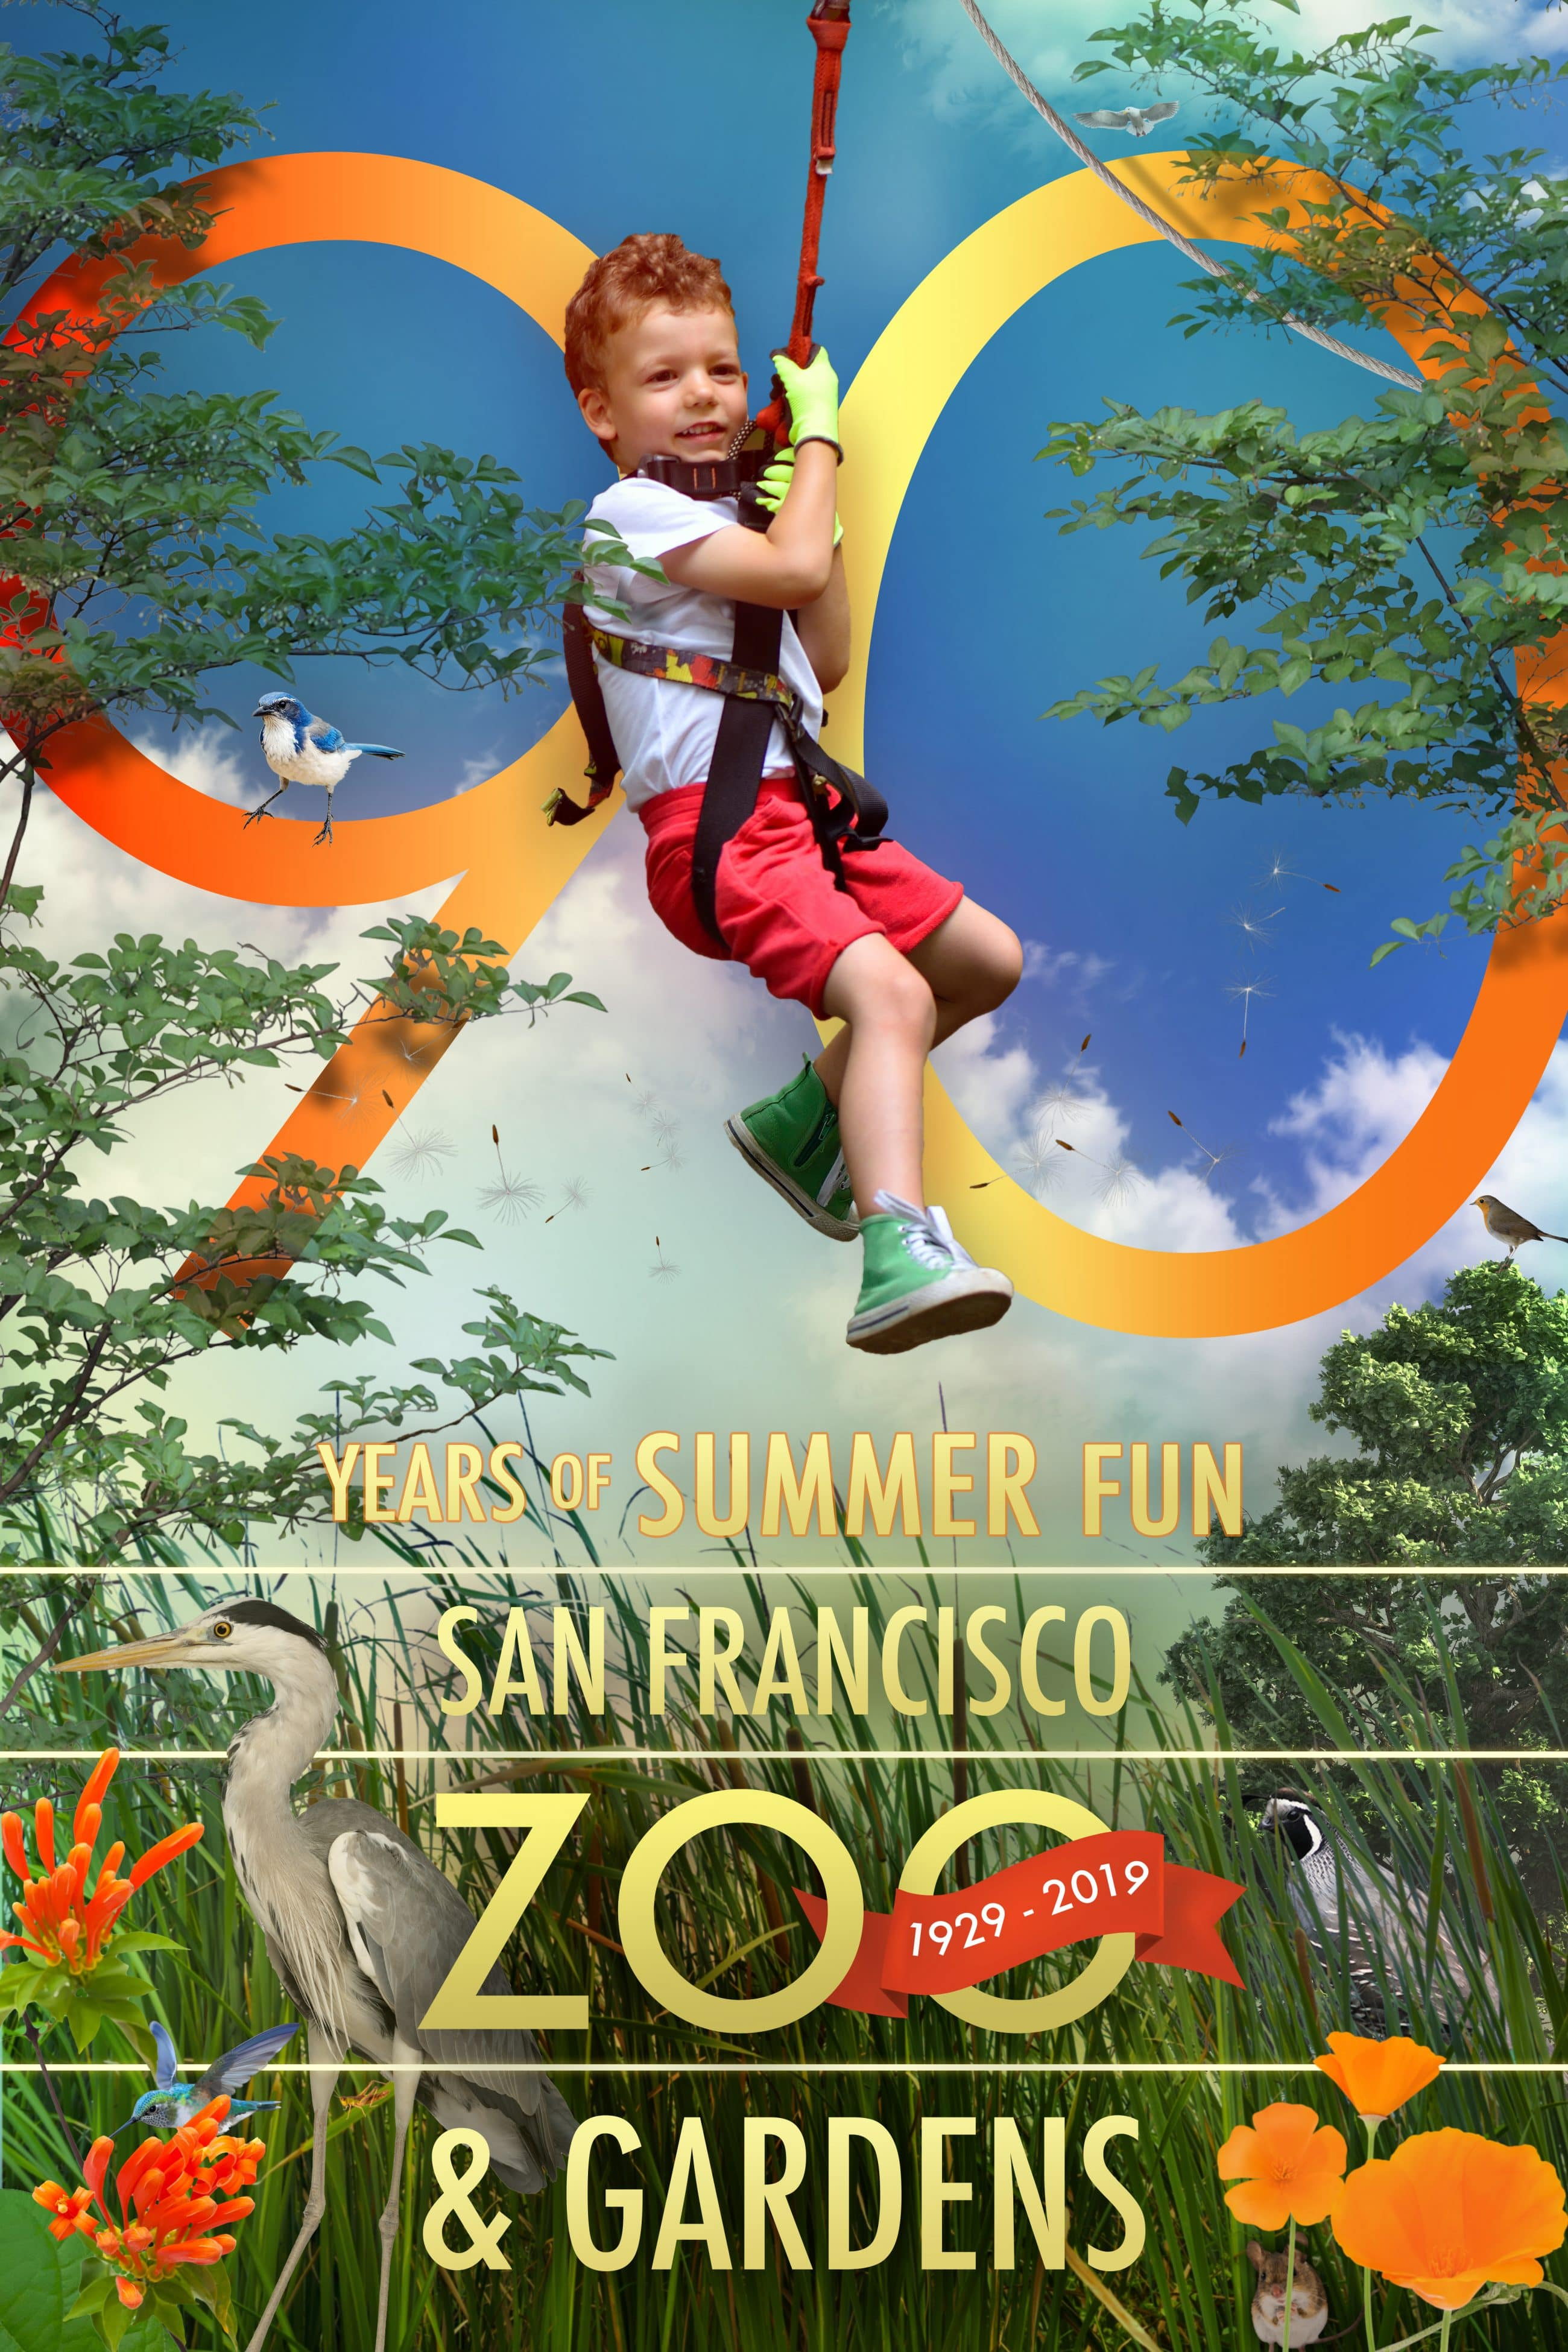 San Francisco Zoo 90th Anniversary Campaign